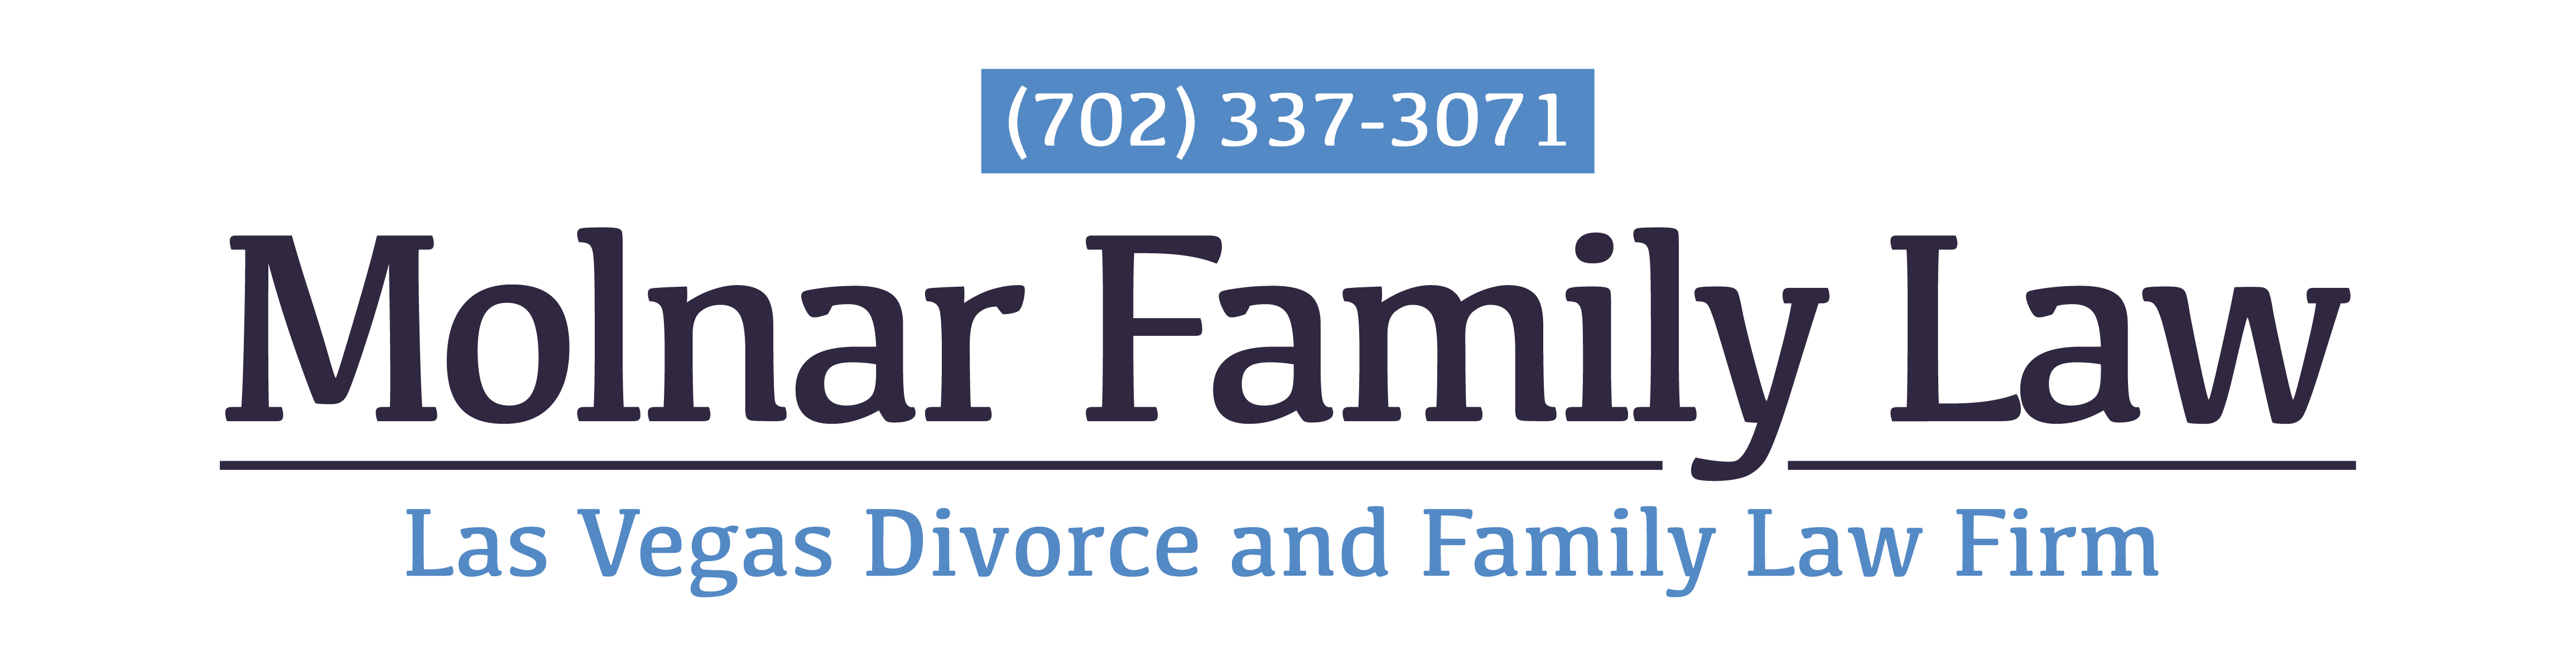 Molnar Family Law